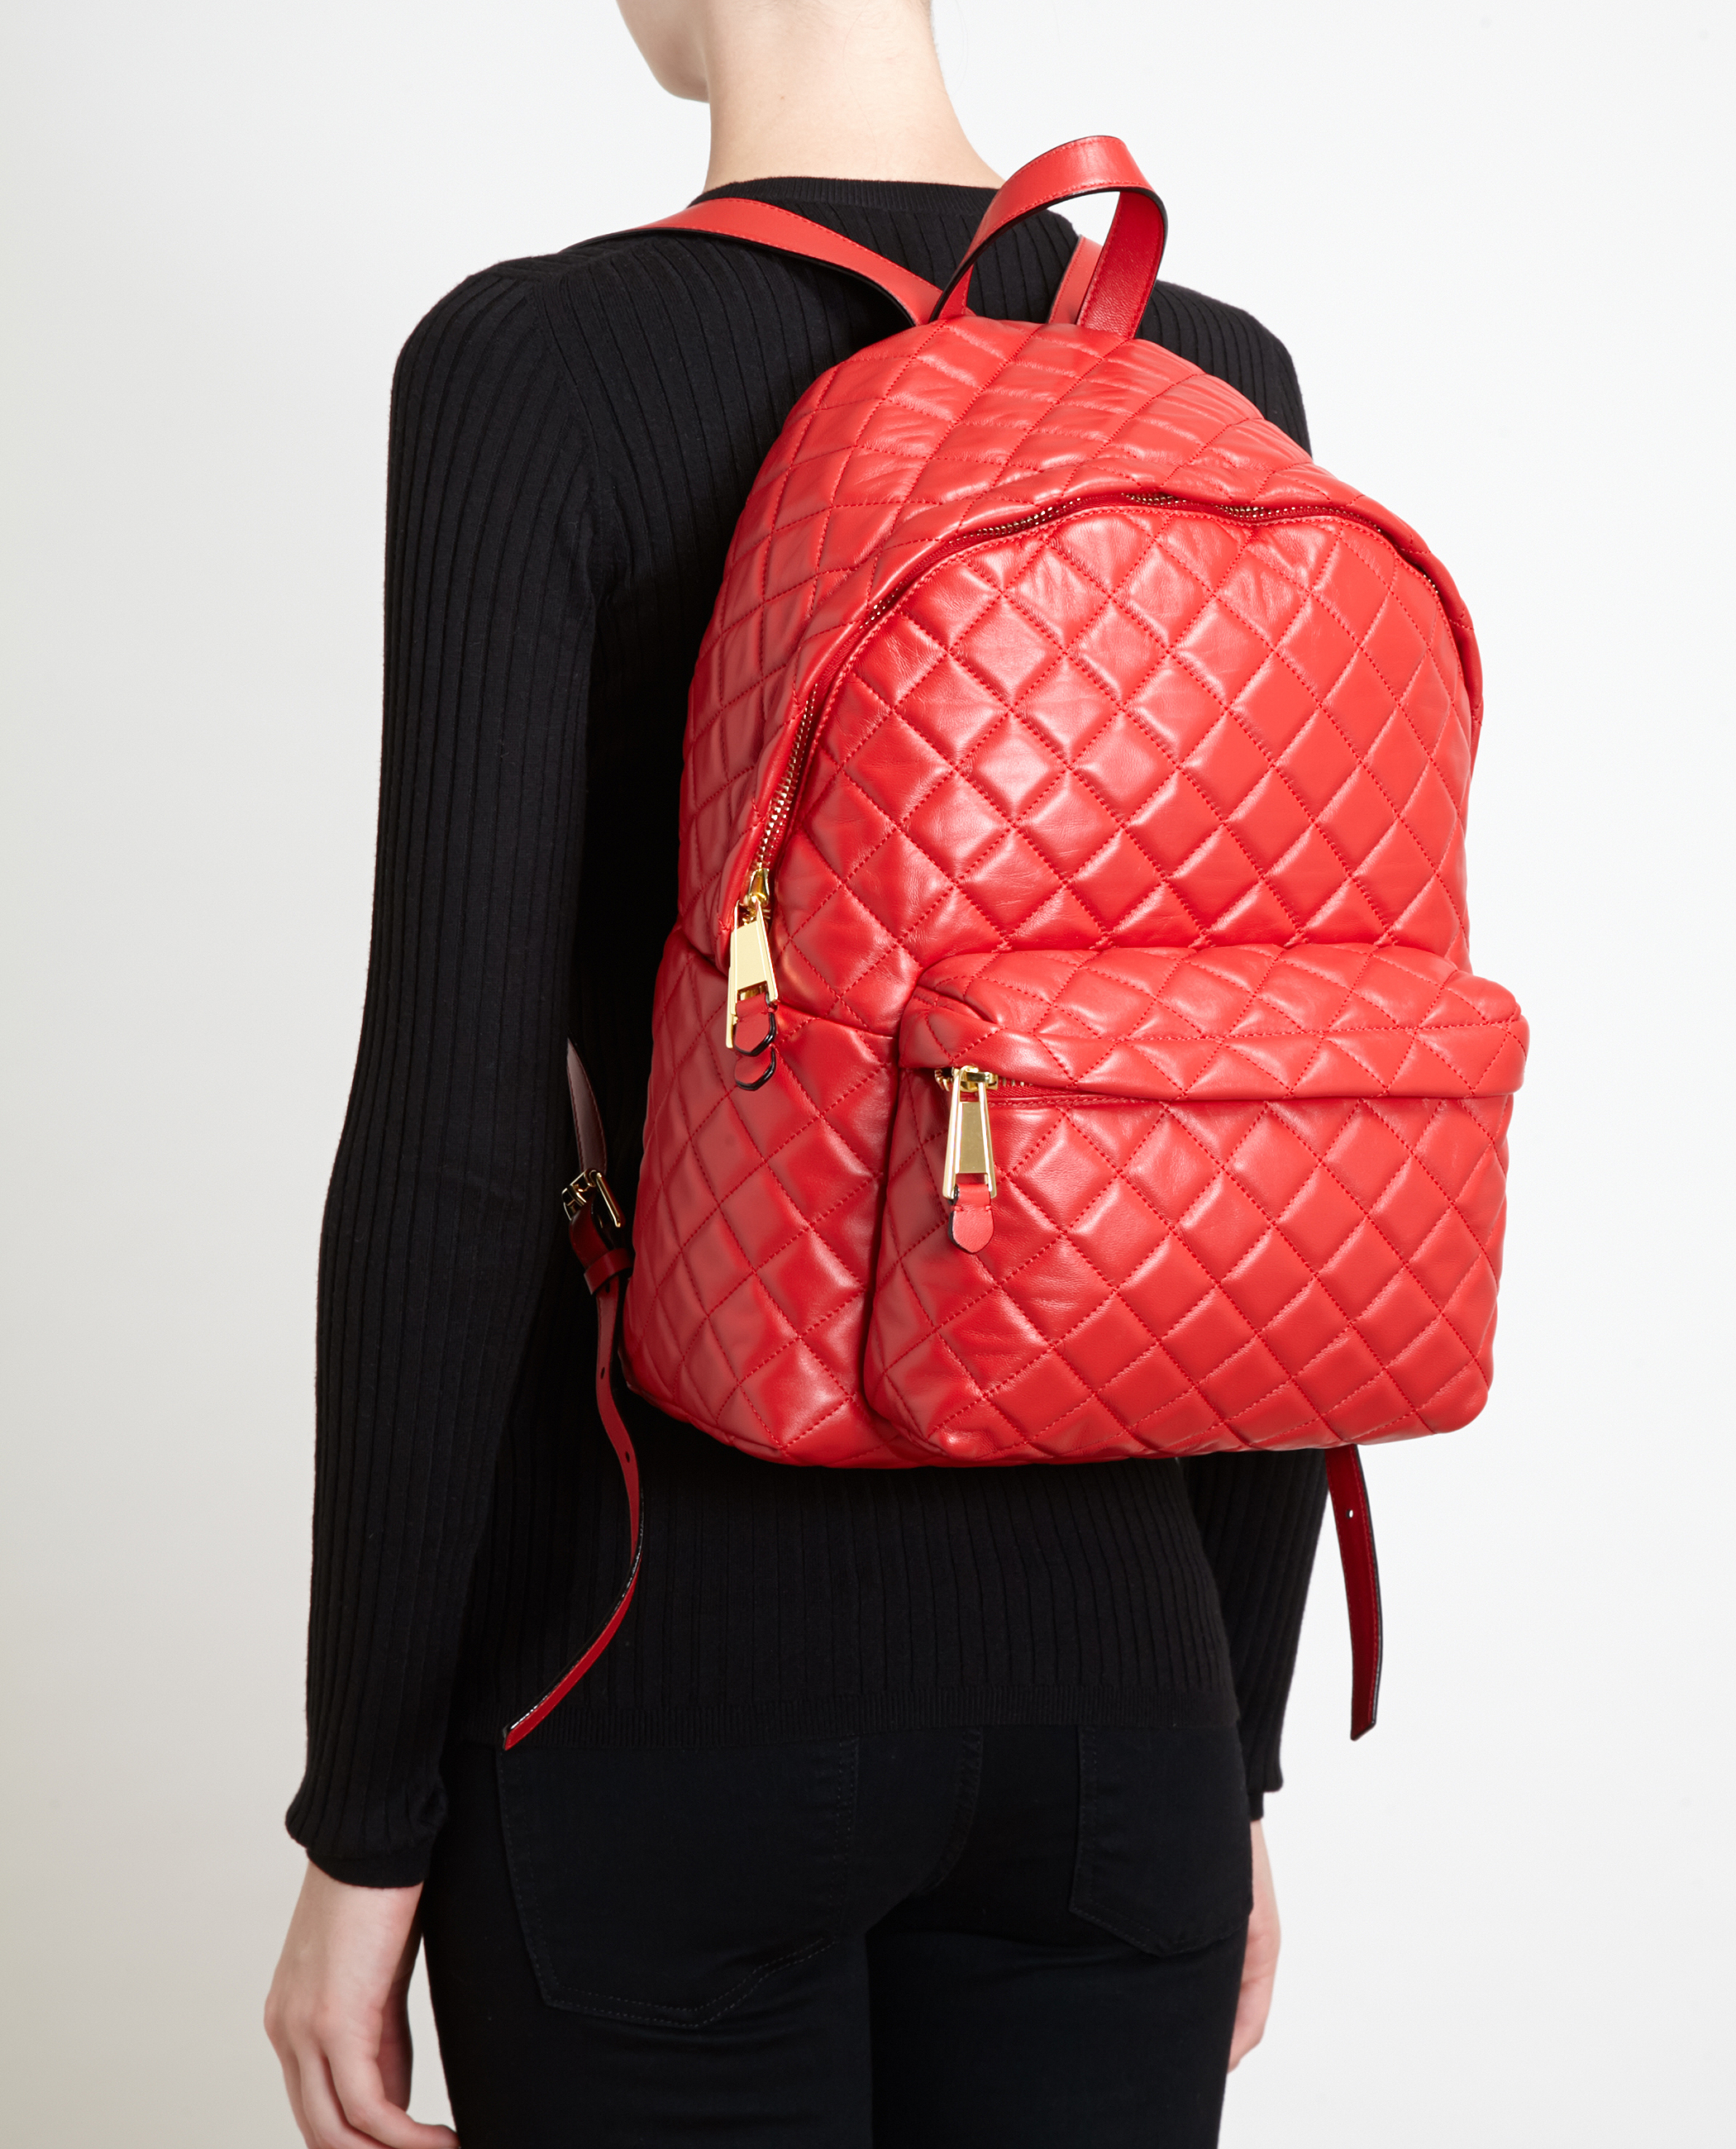 Moschino Quilted Leather Backpack in Red | Lyst : quilted leather rucksack - Adamdwight.com